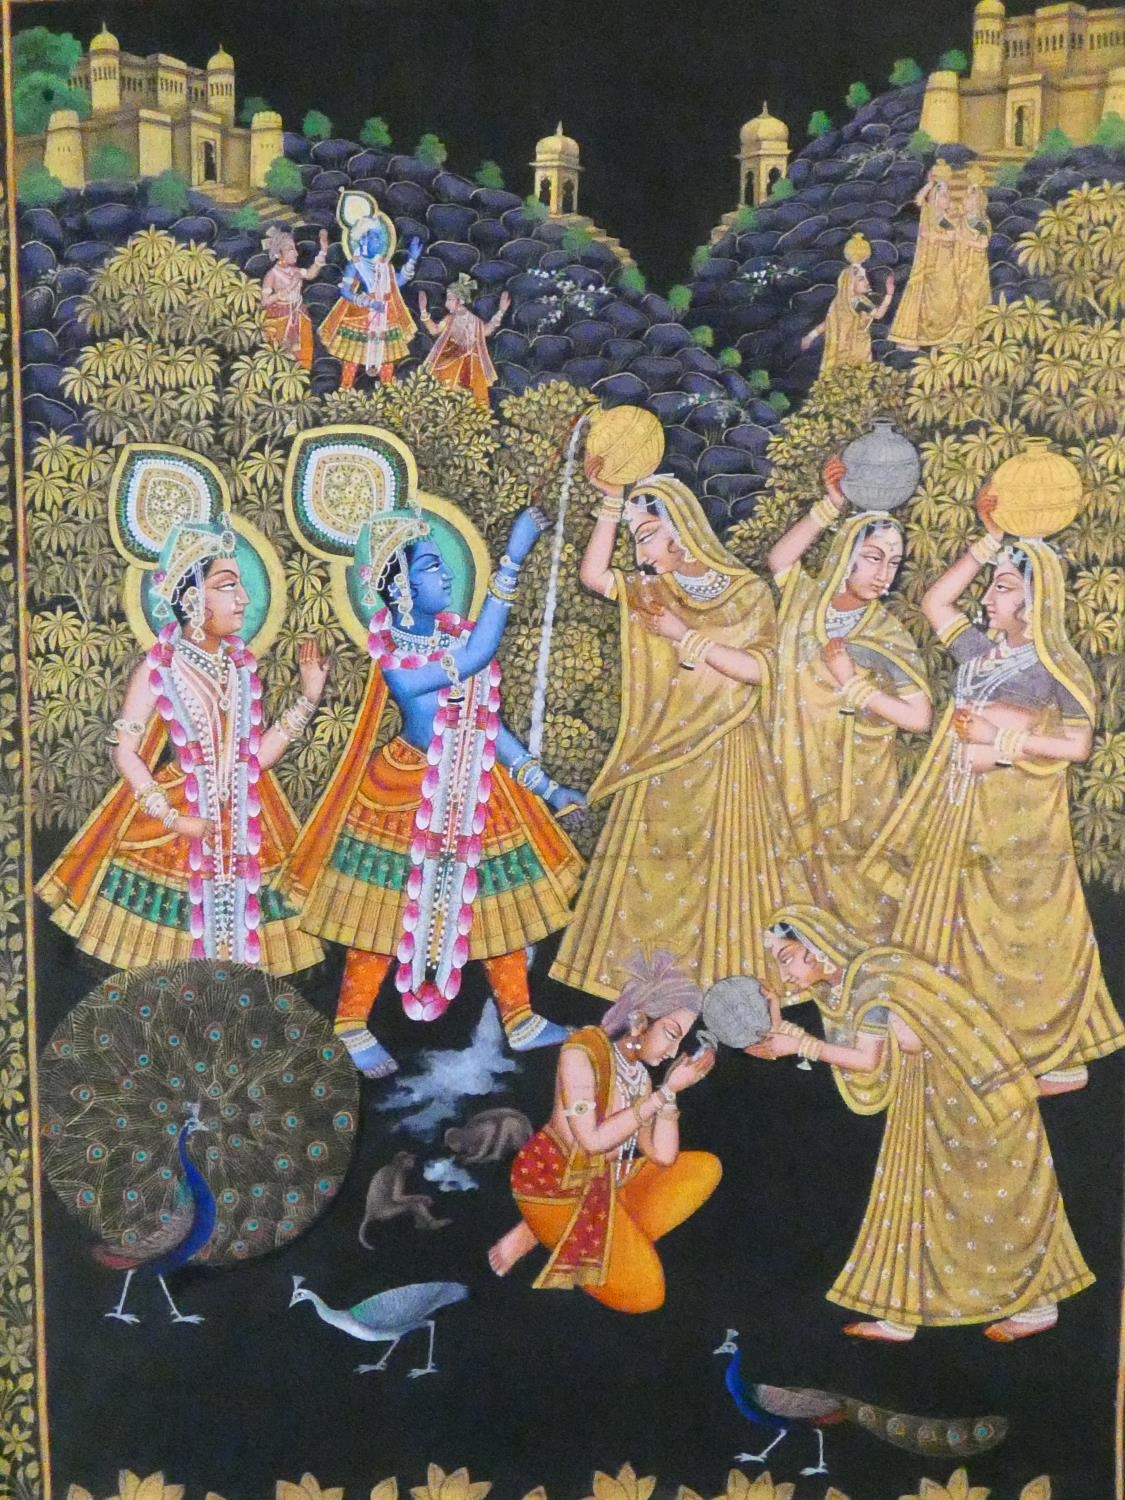 A large framed Indo-Persian gilded silk painting of Krishna with females surrounding him, standing